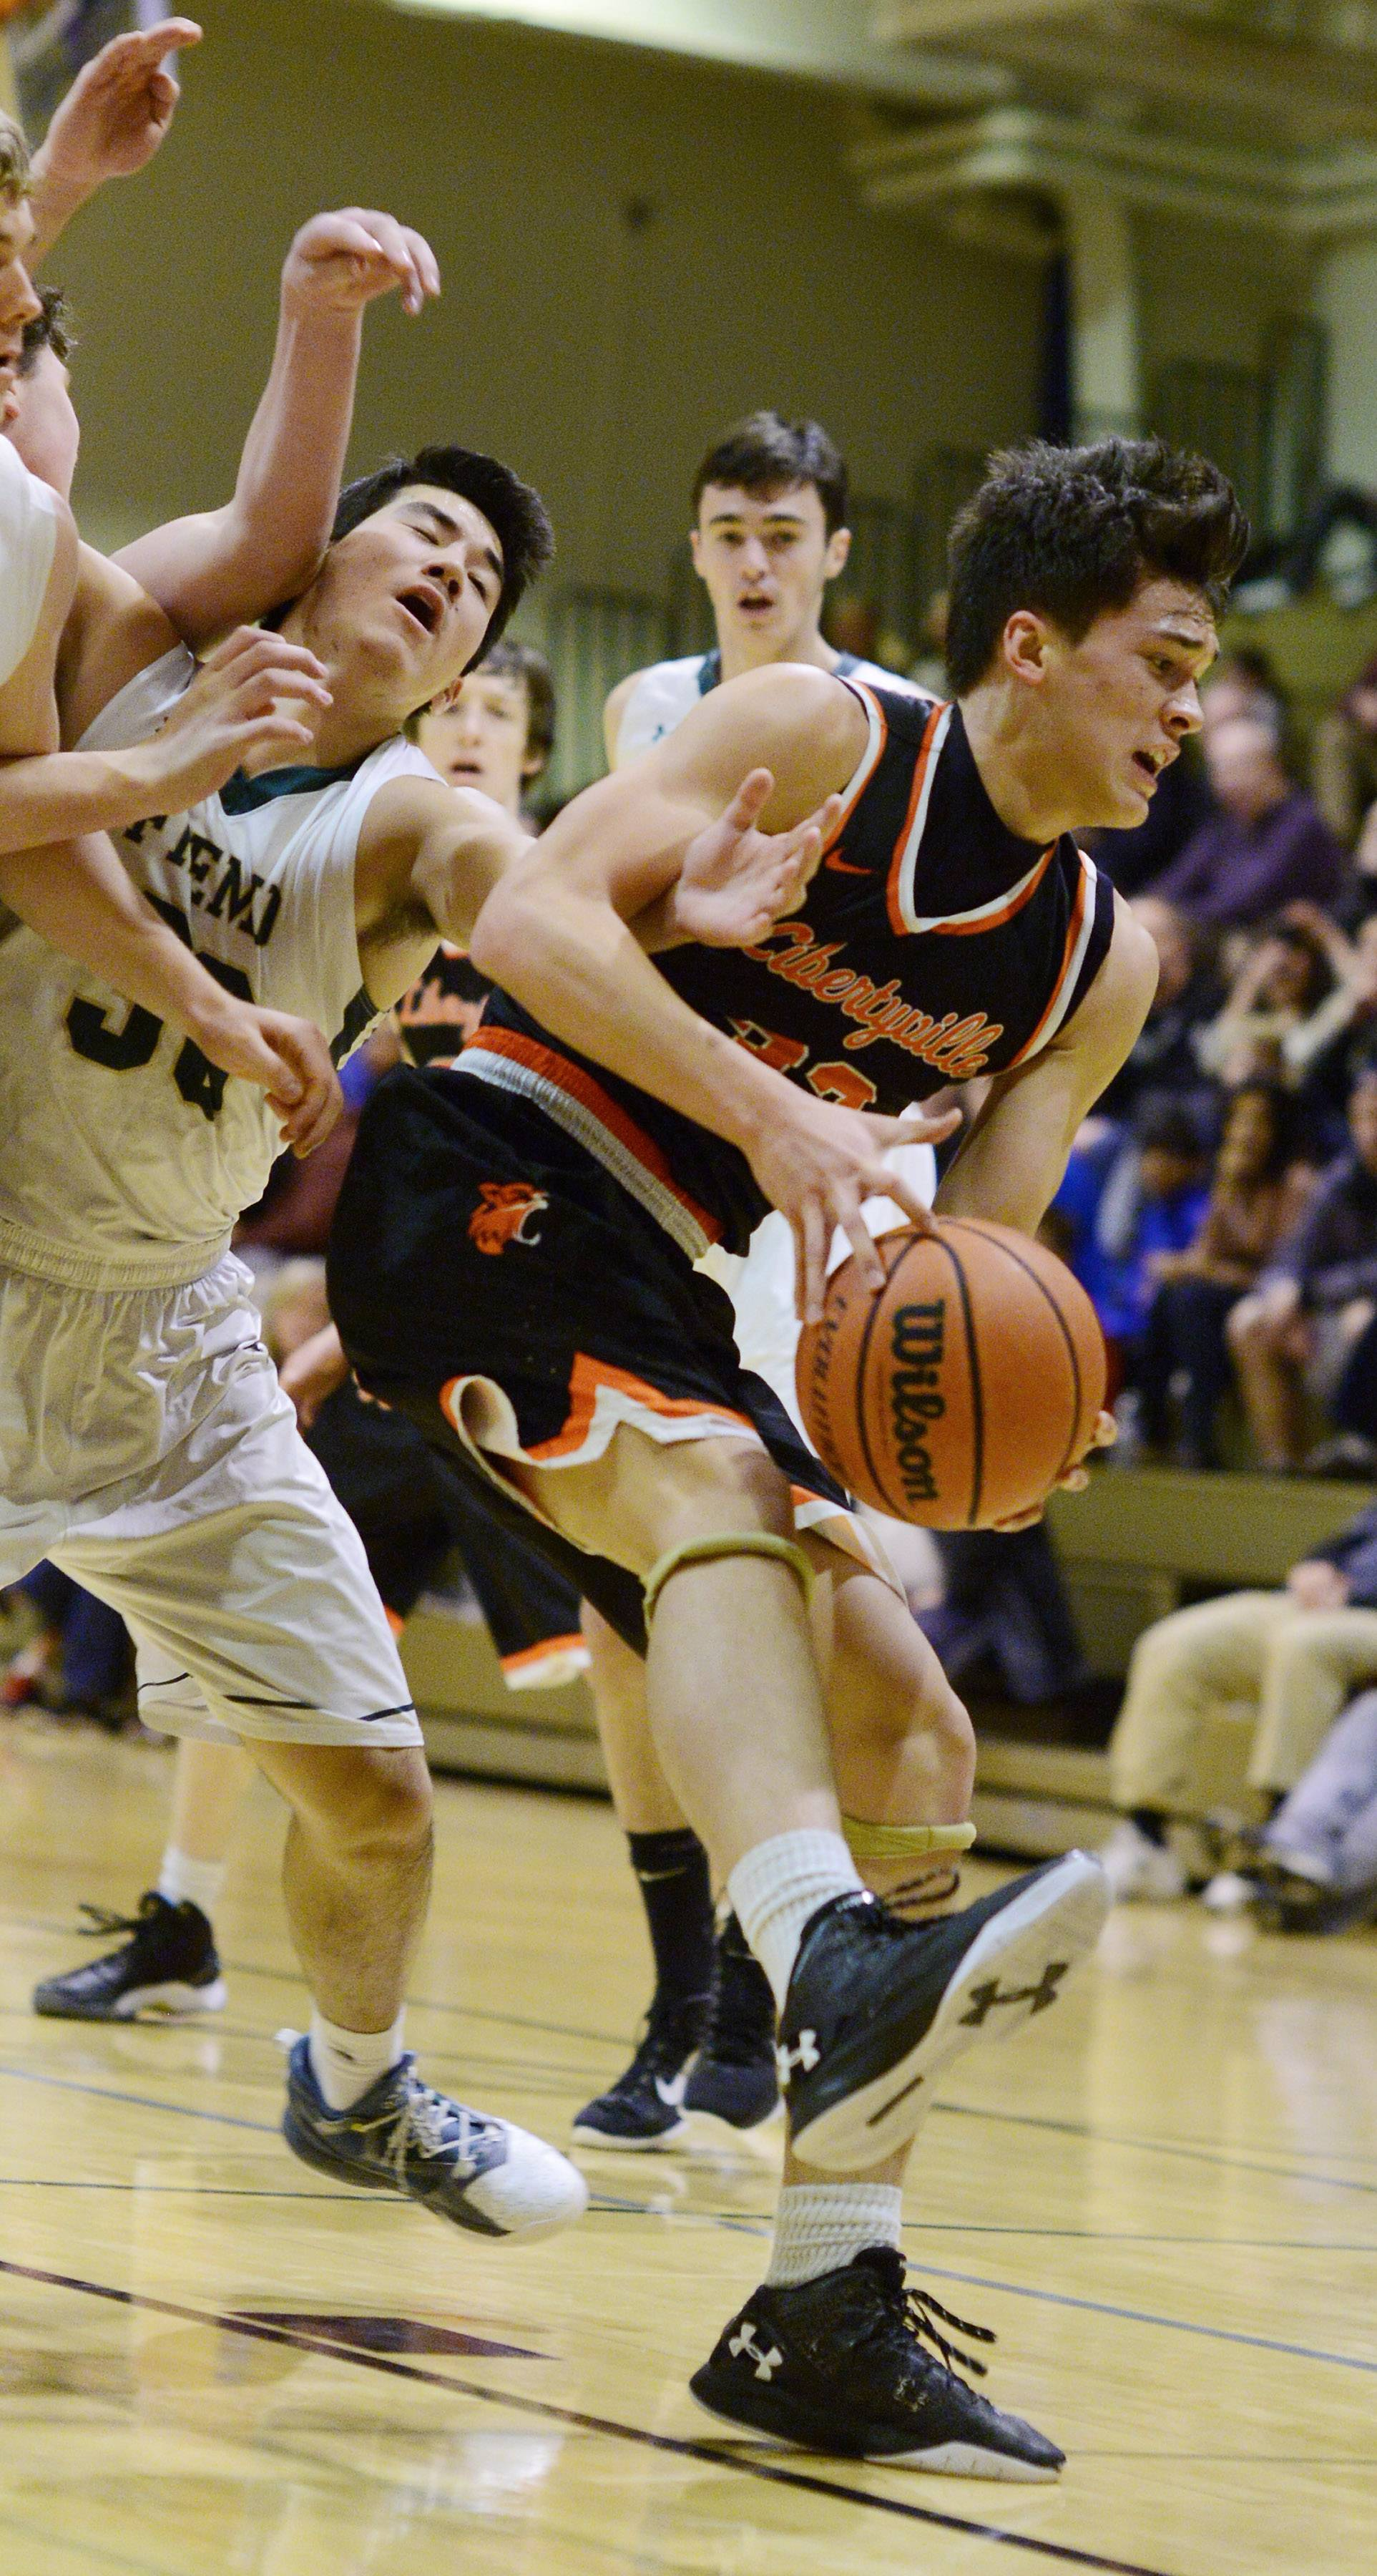 Libertyville's Harrison Bach, right, draws contact from Fremd's Ryan Martin during semifinal play in the Wheeling Hardwood Classic on Thursday.